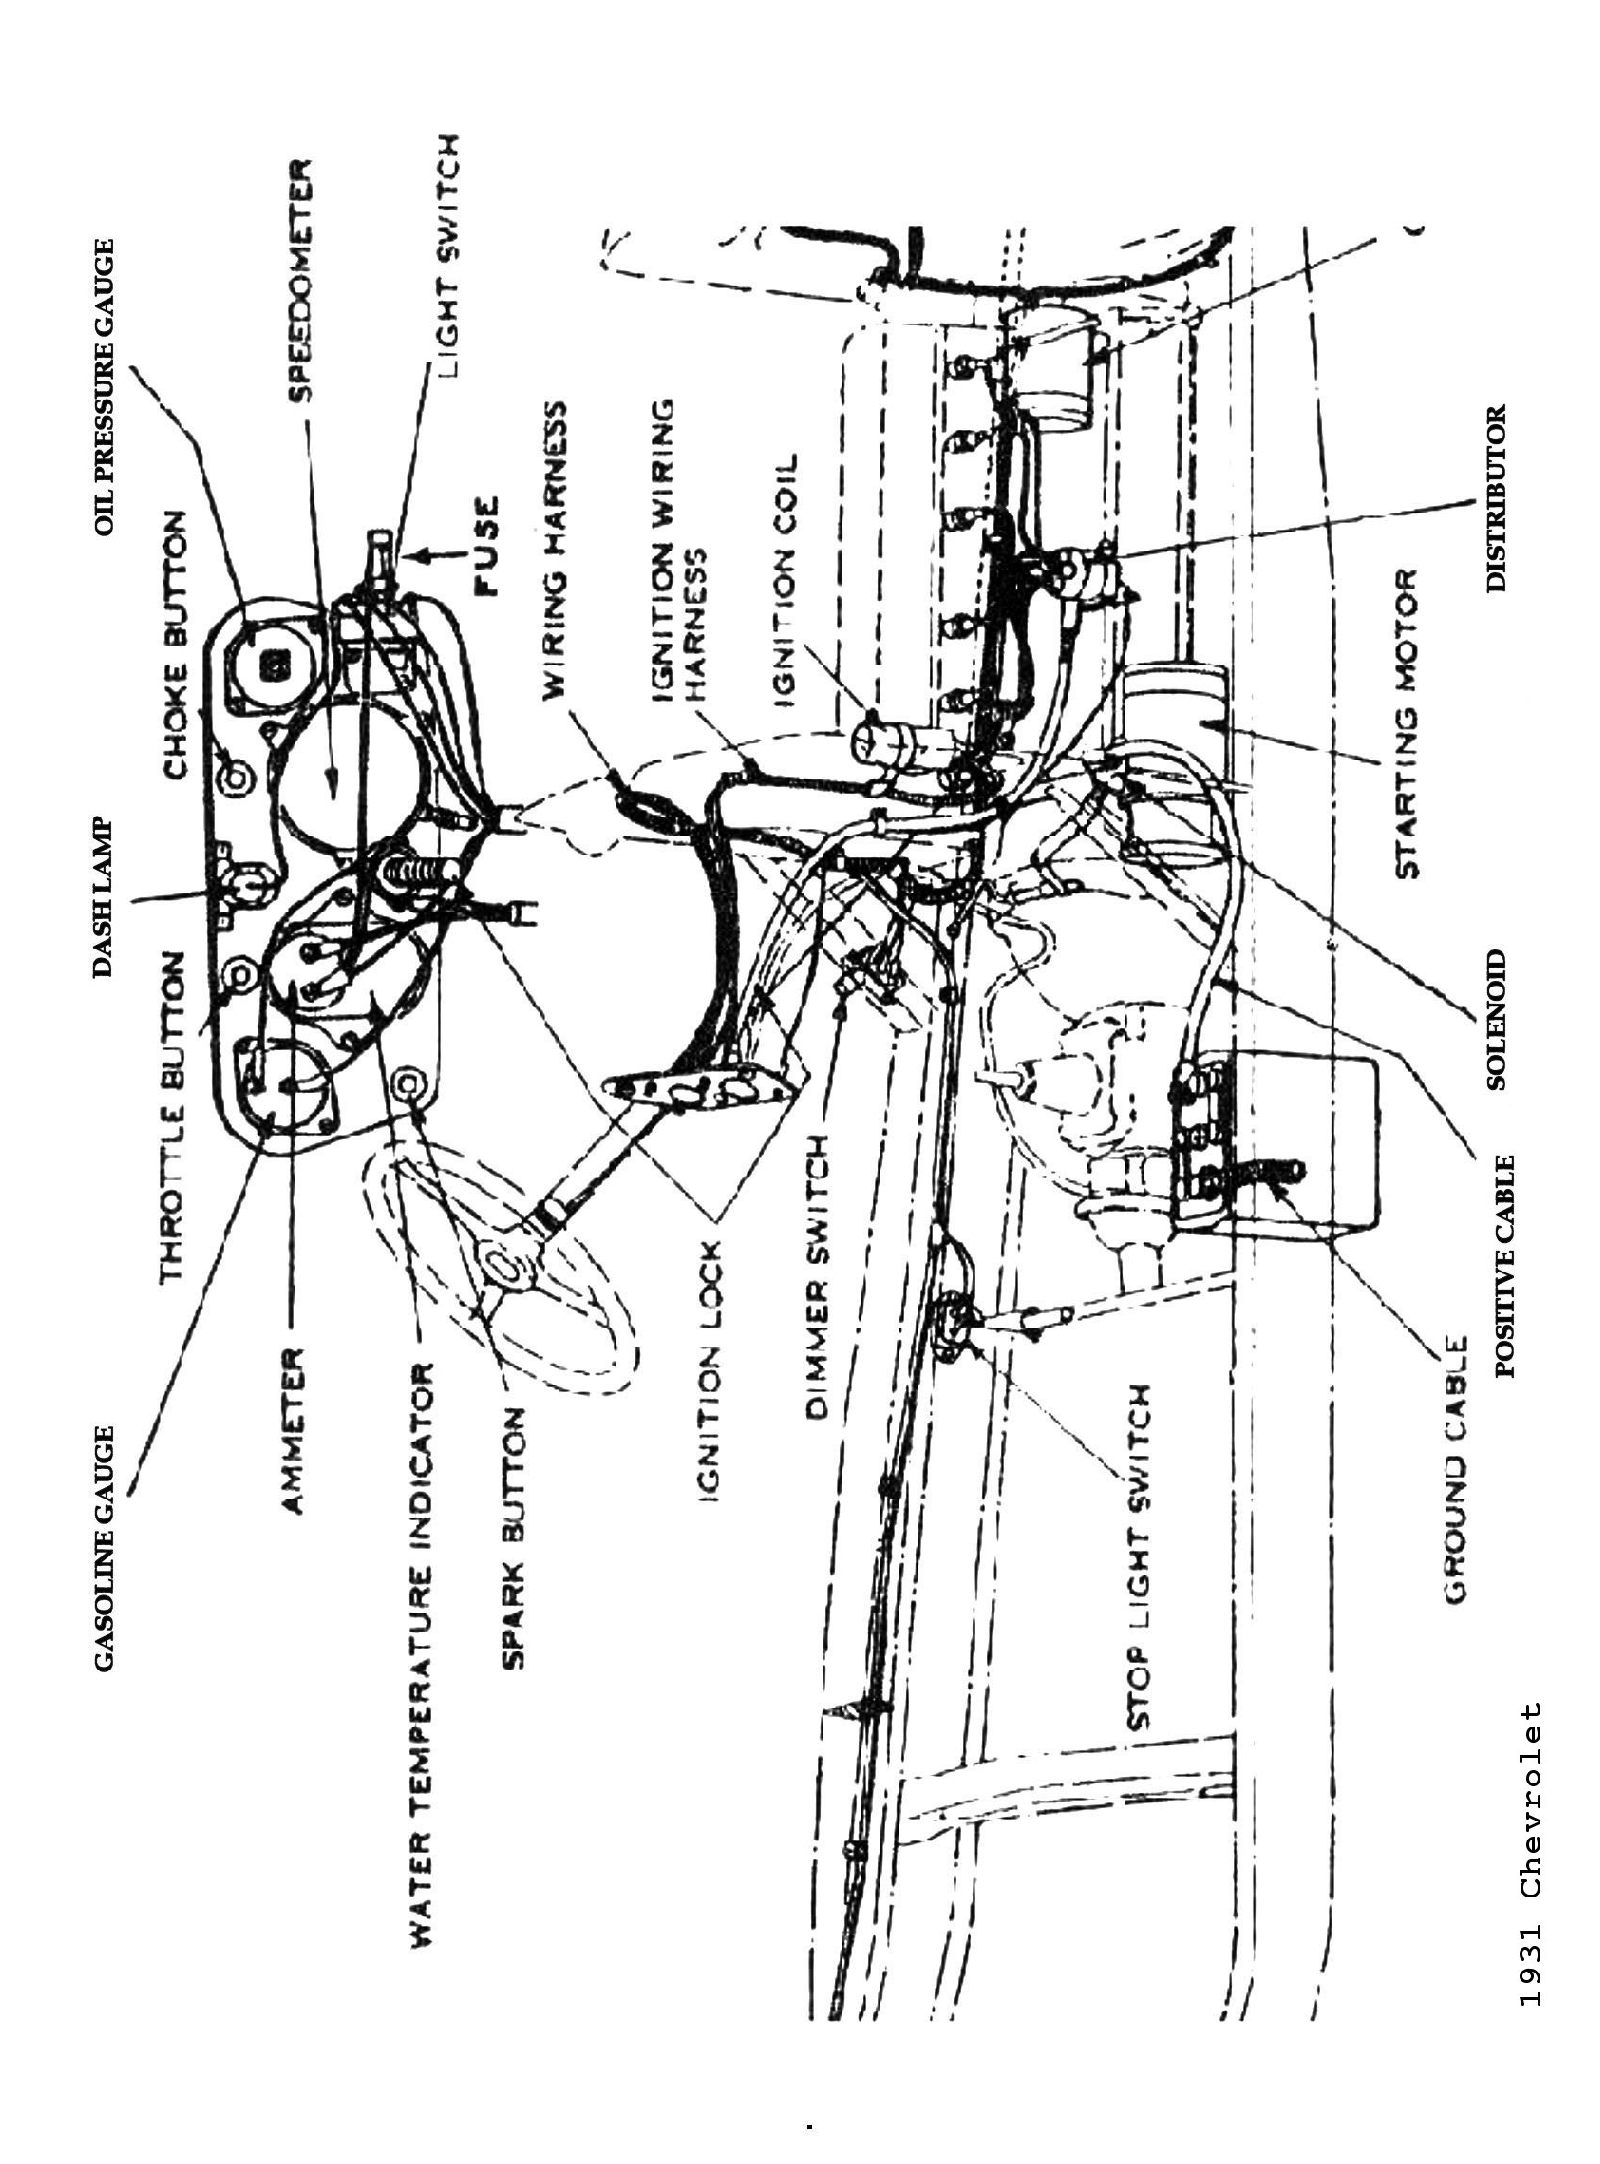 1950 chrysler engine wiring diagram picture wiring diagram